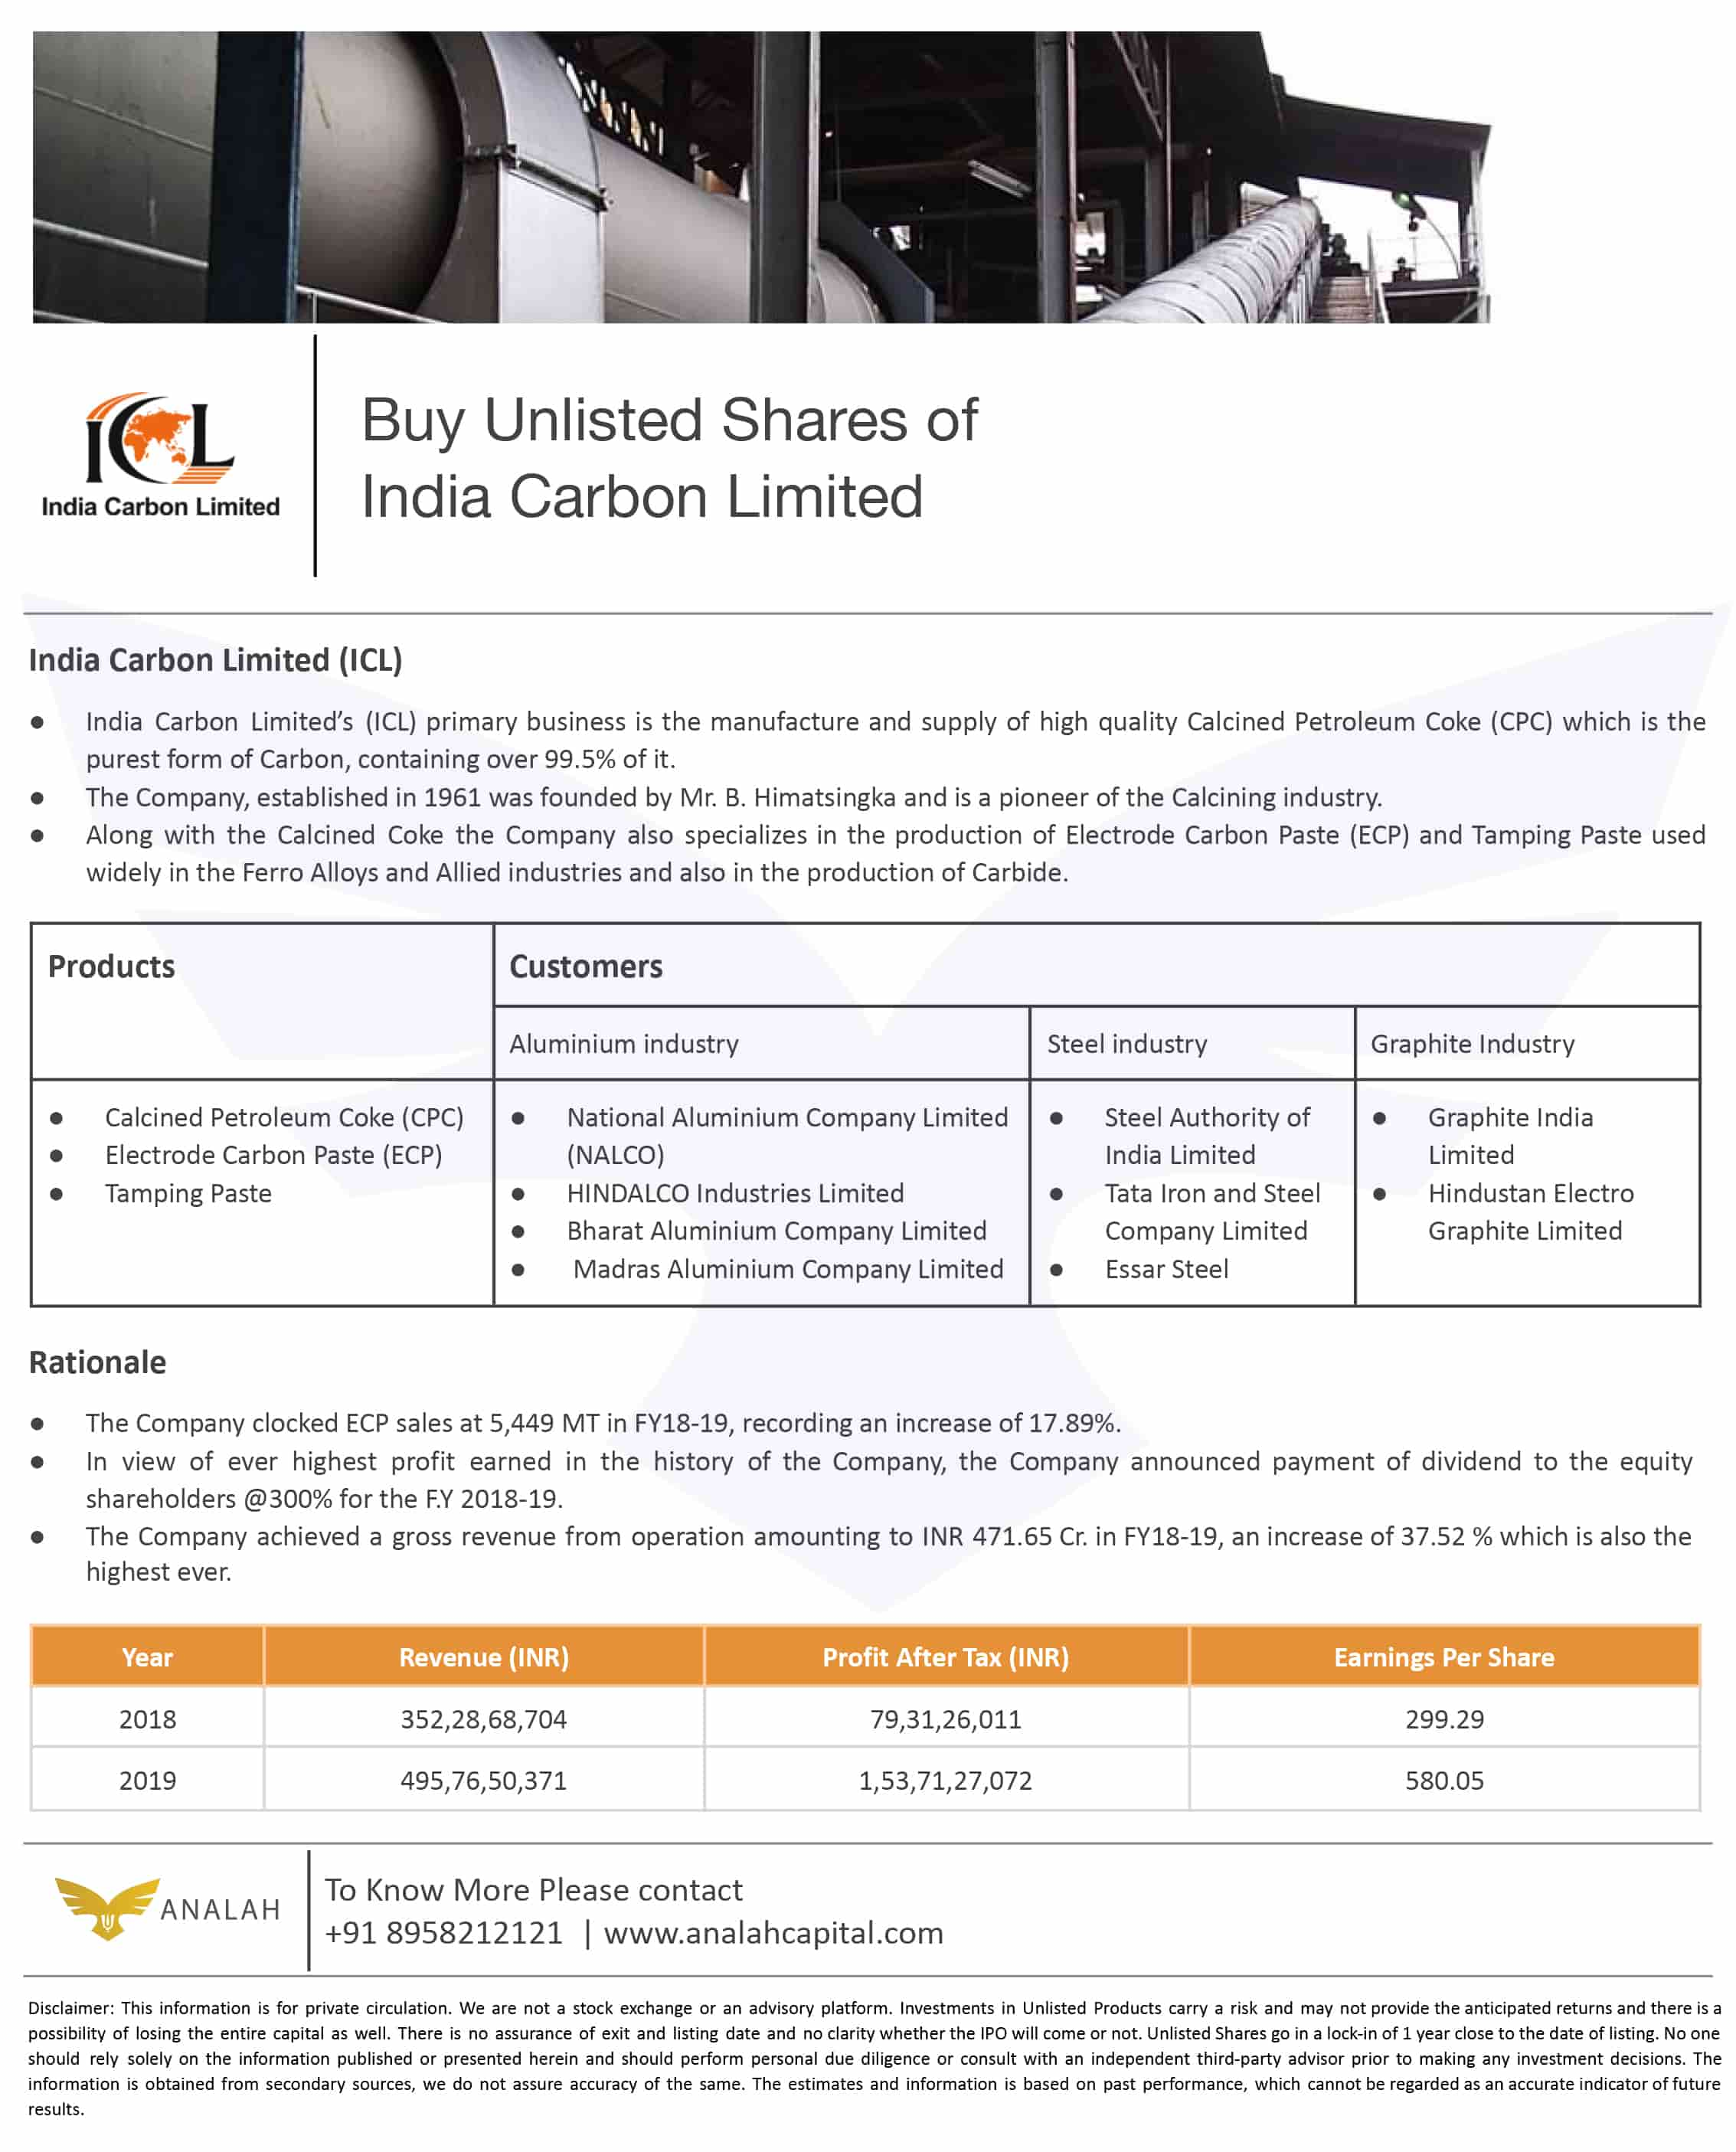 India Carbon Unlisted Shares